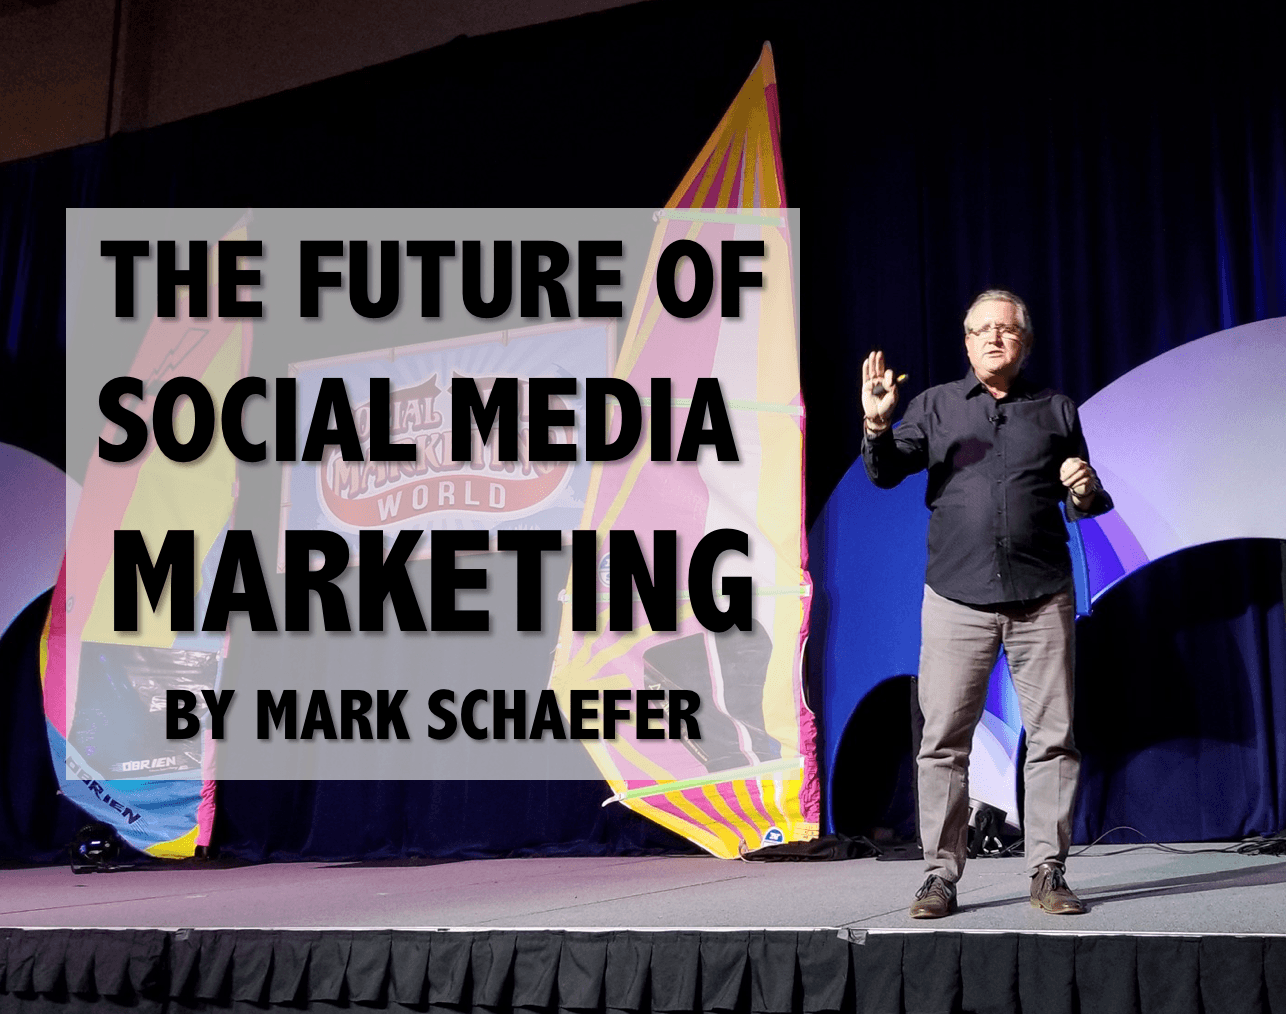 10 Ideas that will drive the future of social media marketing